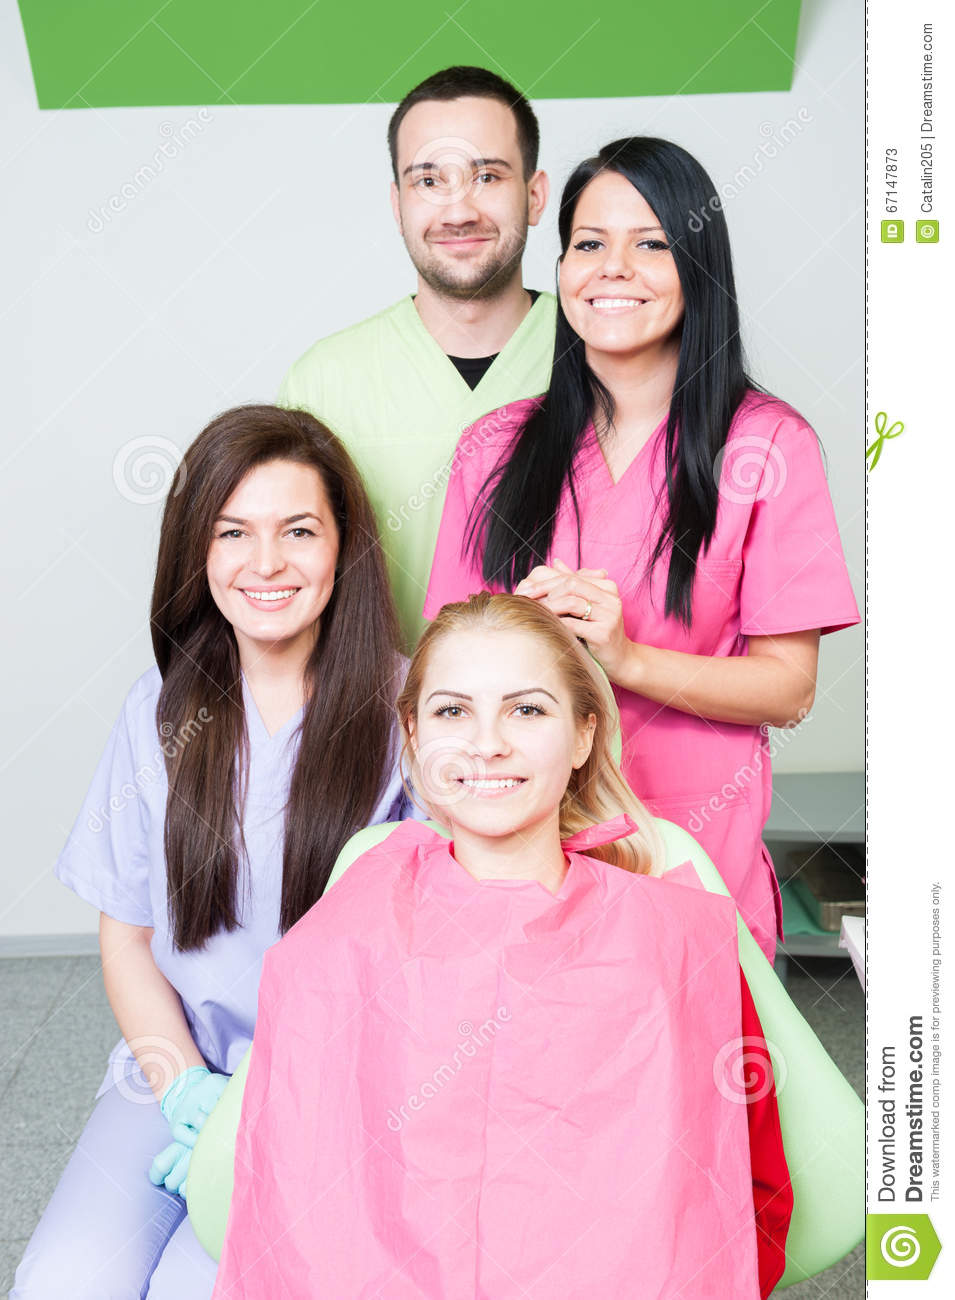 Dentist doctor and assistants in dental office